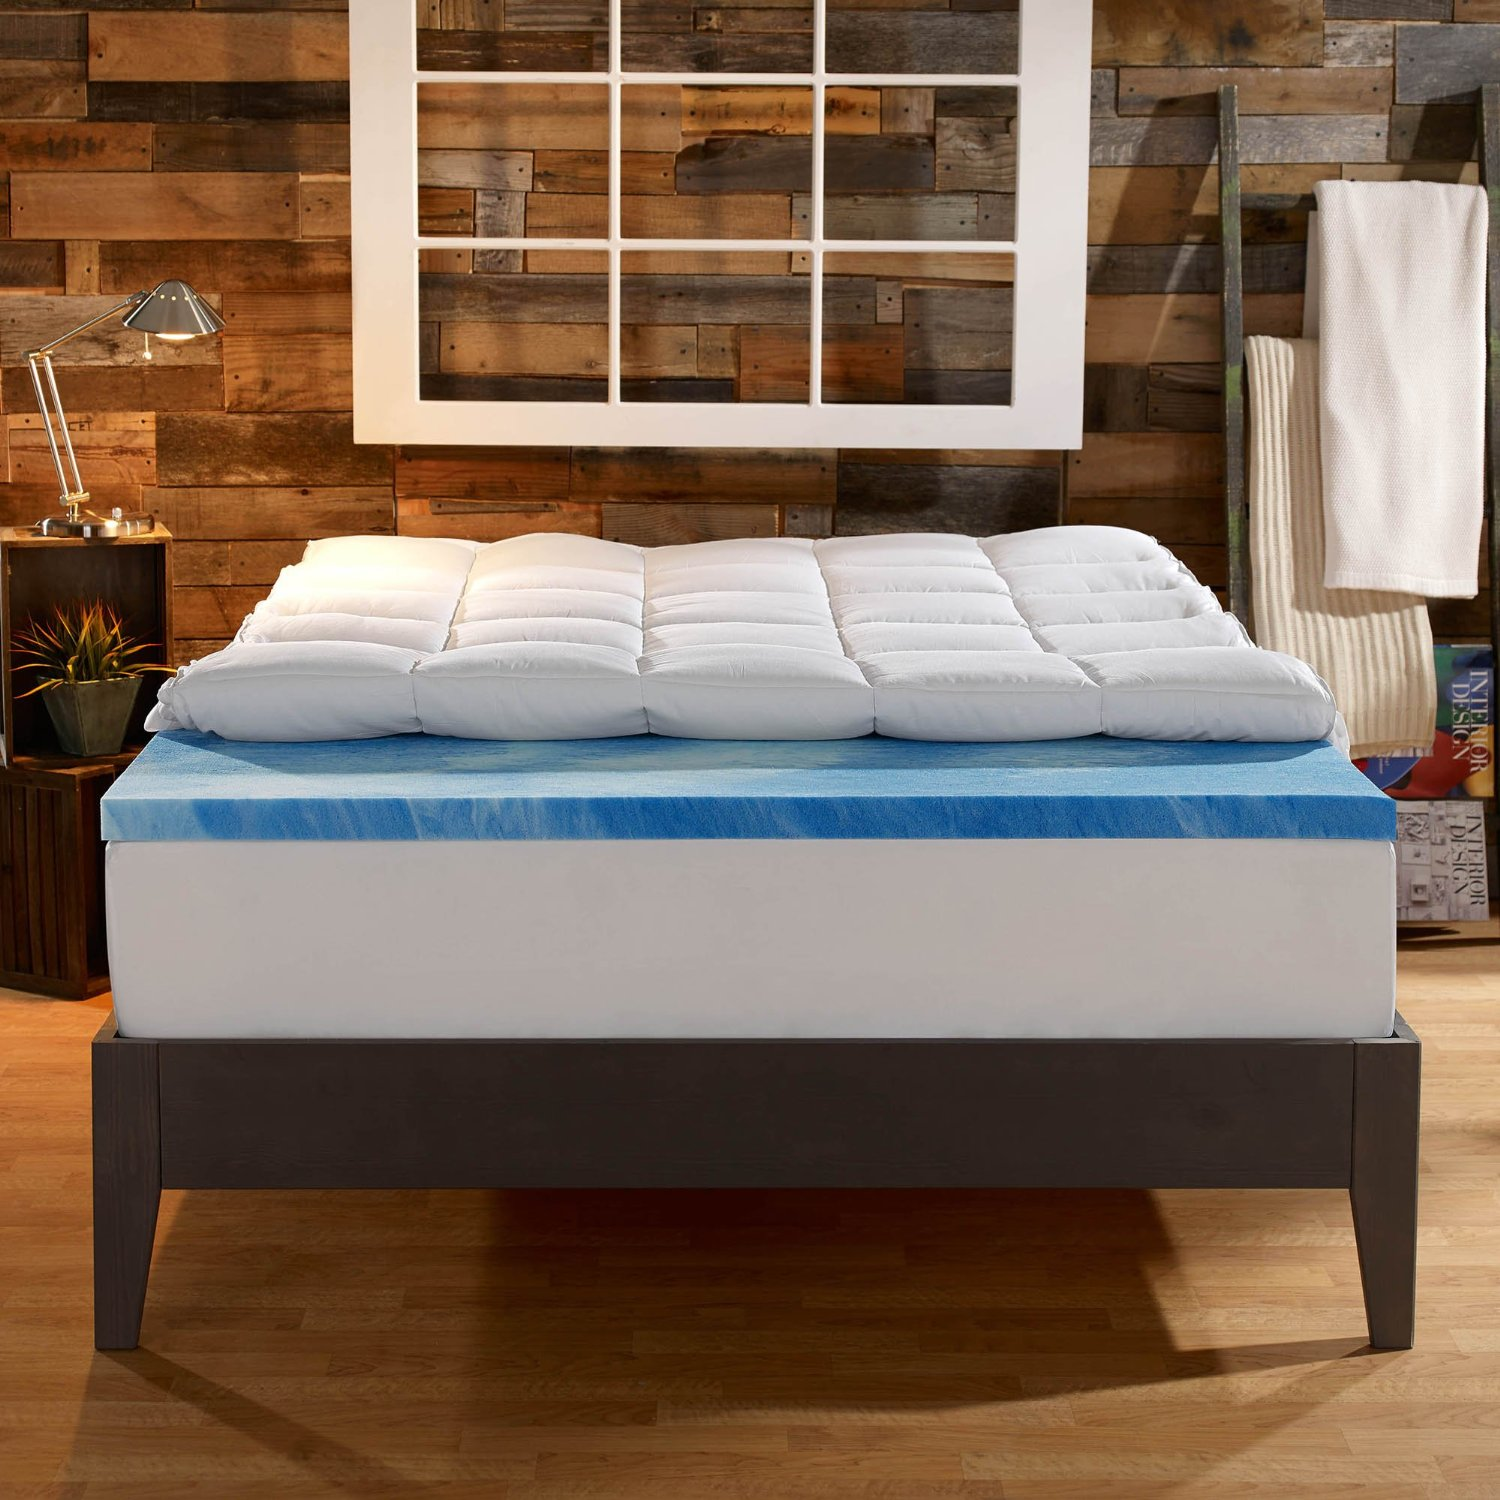 Sleep Innovations 4-inch Dual-Layer Mattress Topper: A ...